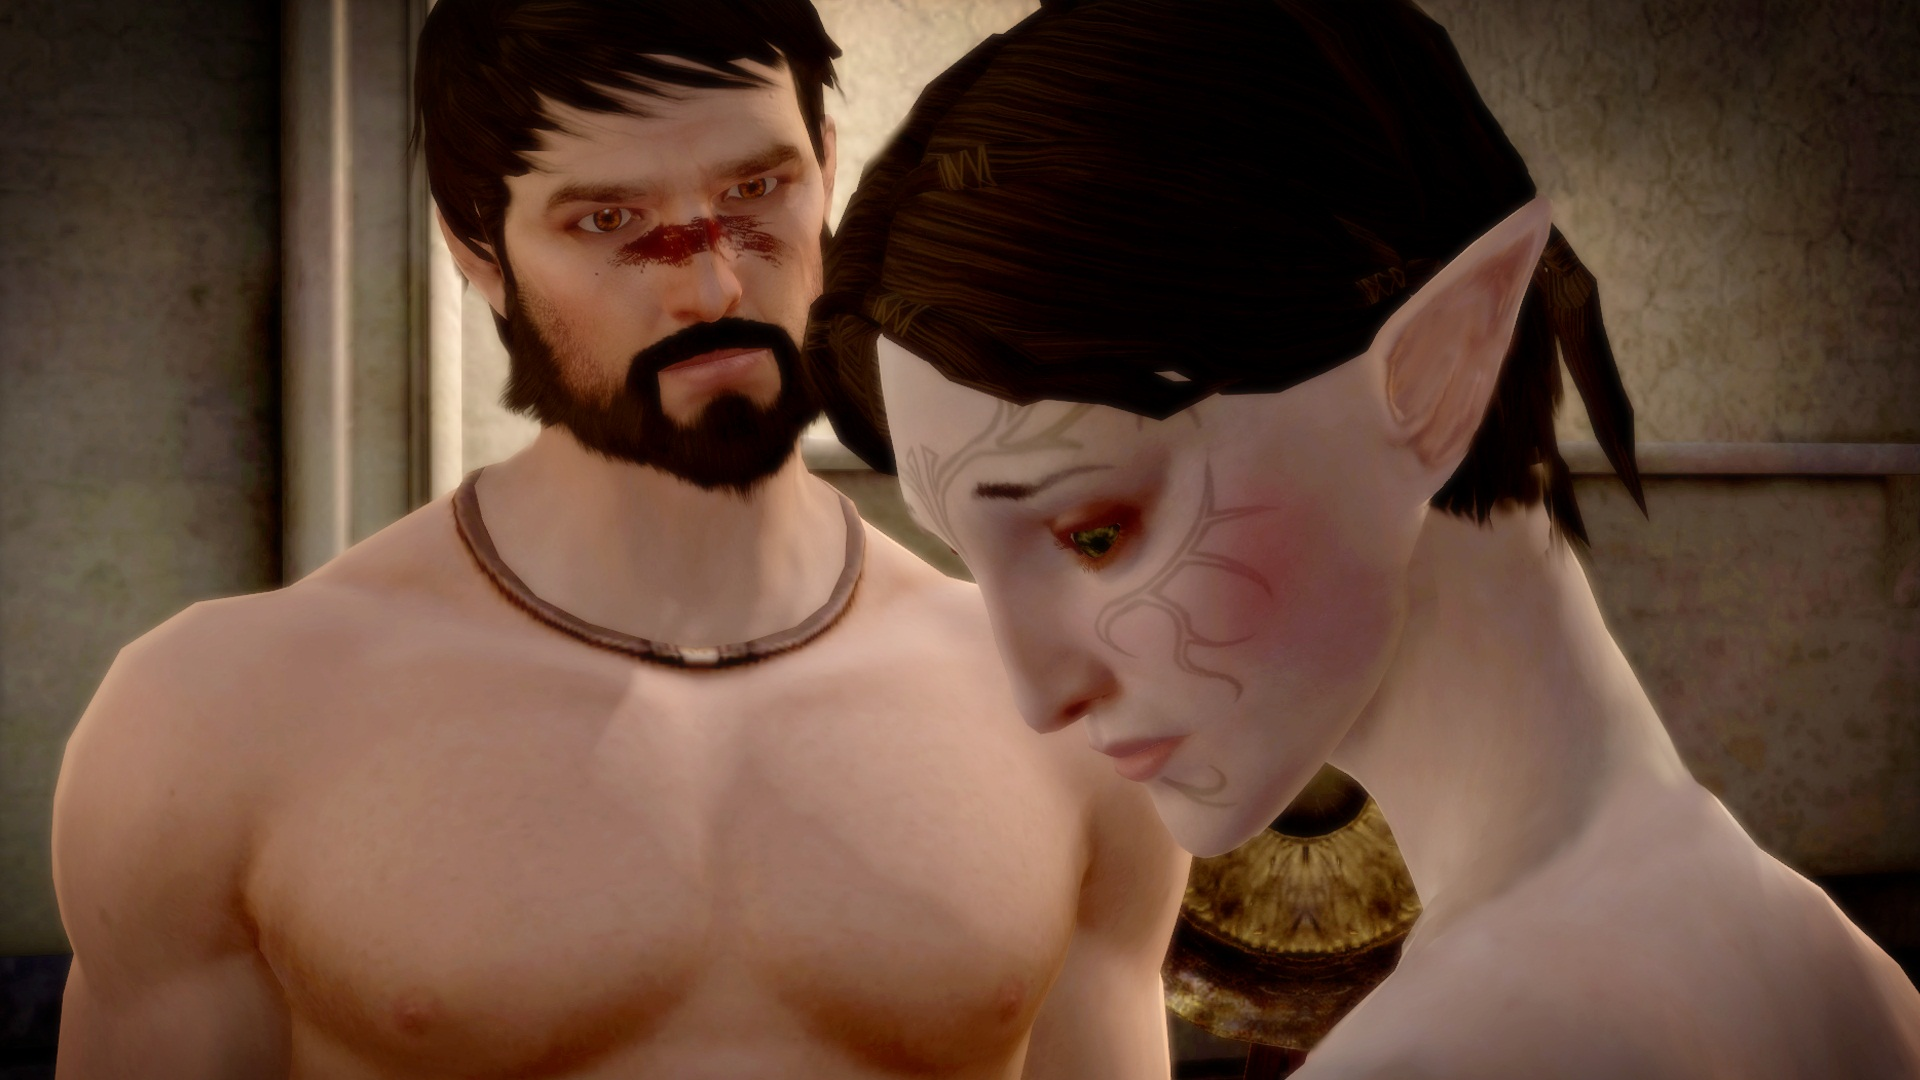 Dragon age 2 sexy meril naked naked pictures